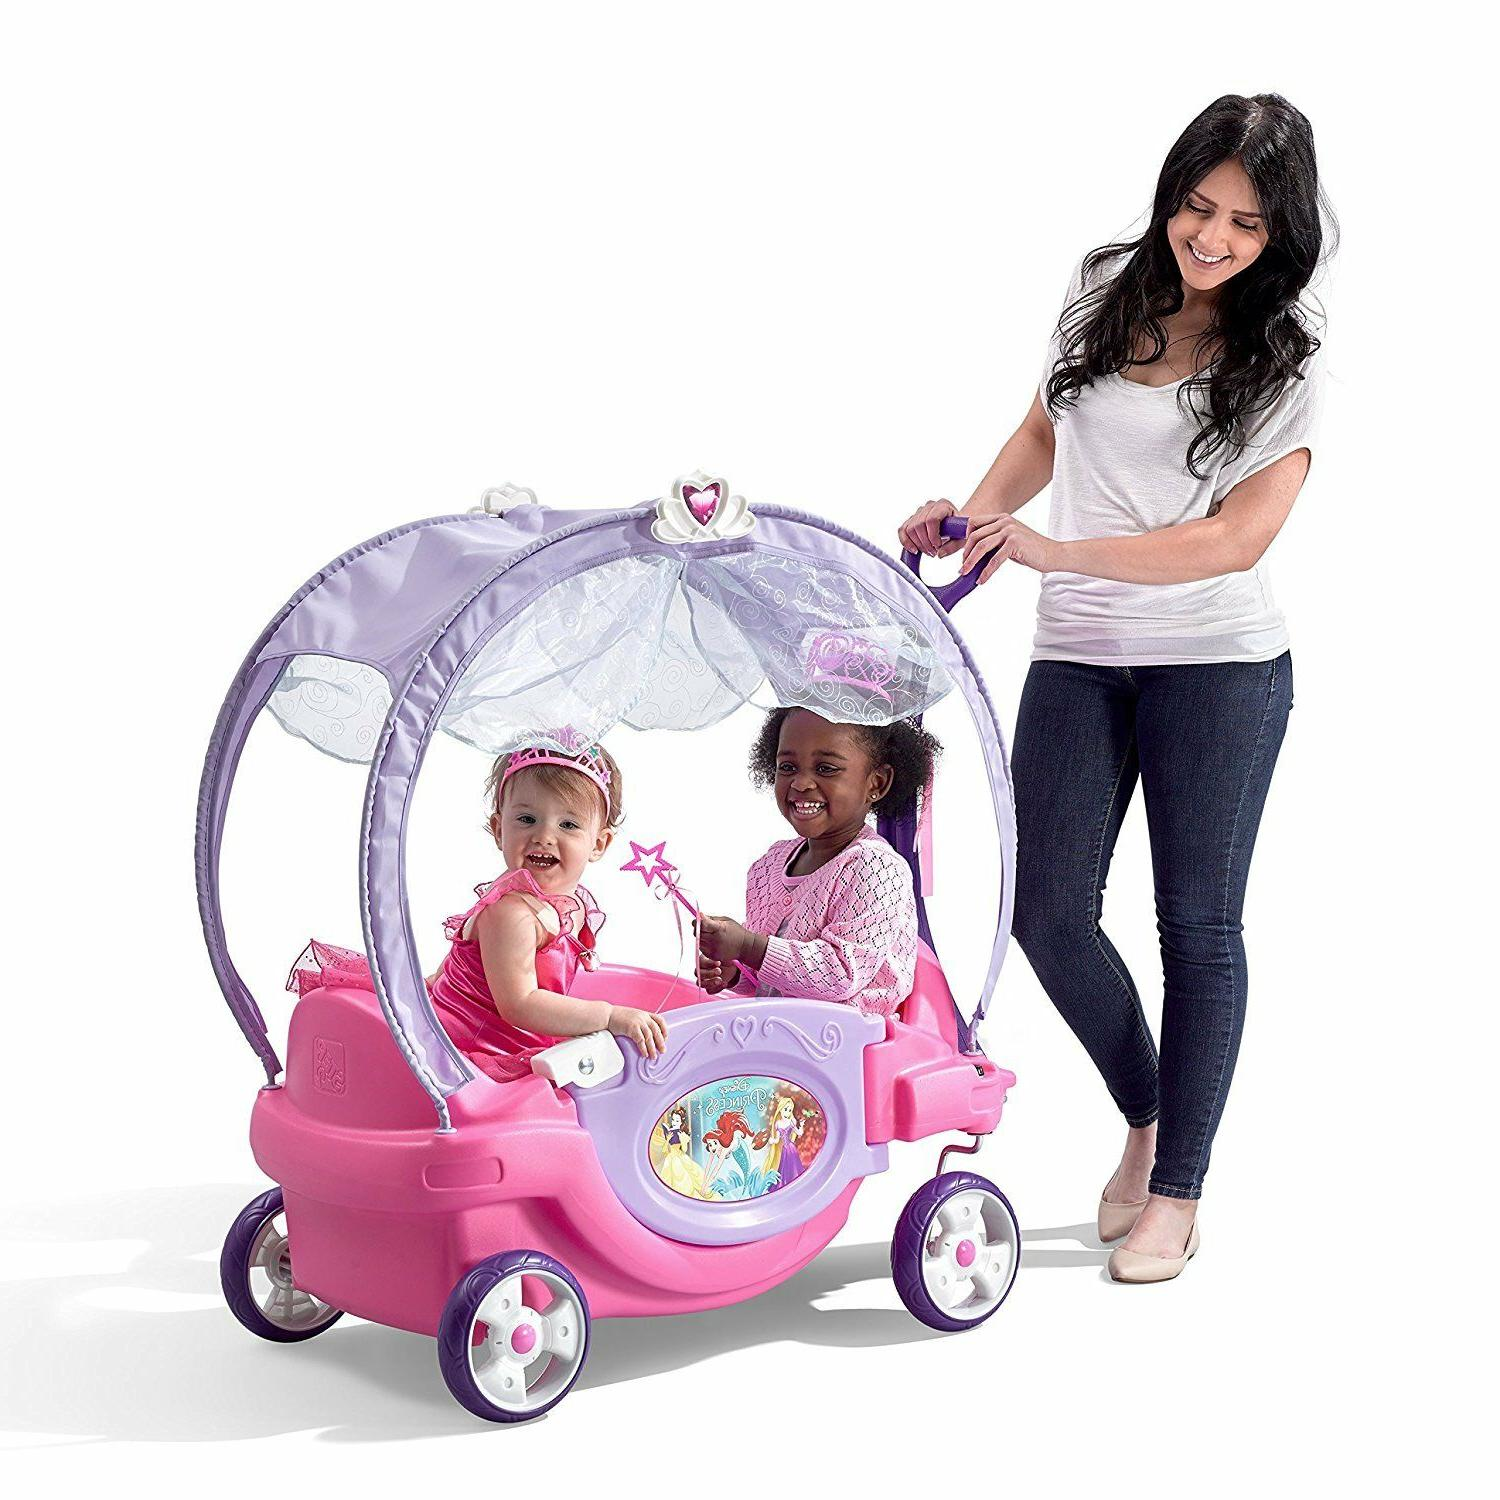 Princess Chariot Carriage Wagon Car 2 Kids Canopy Disney Rid